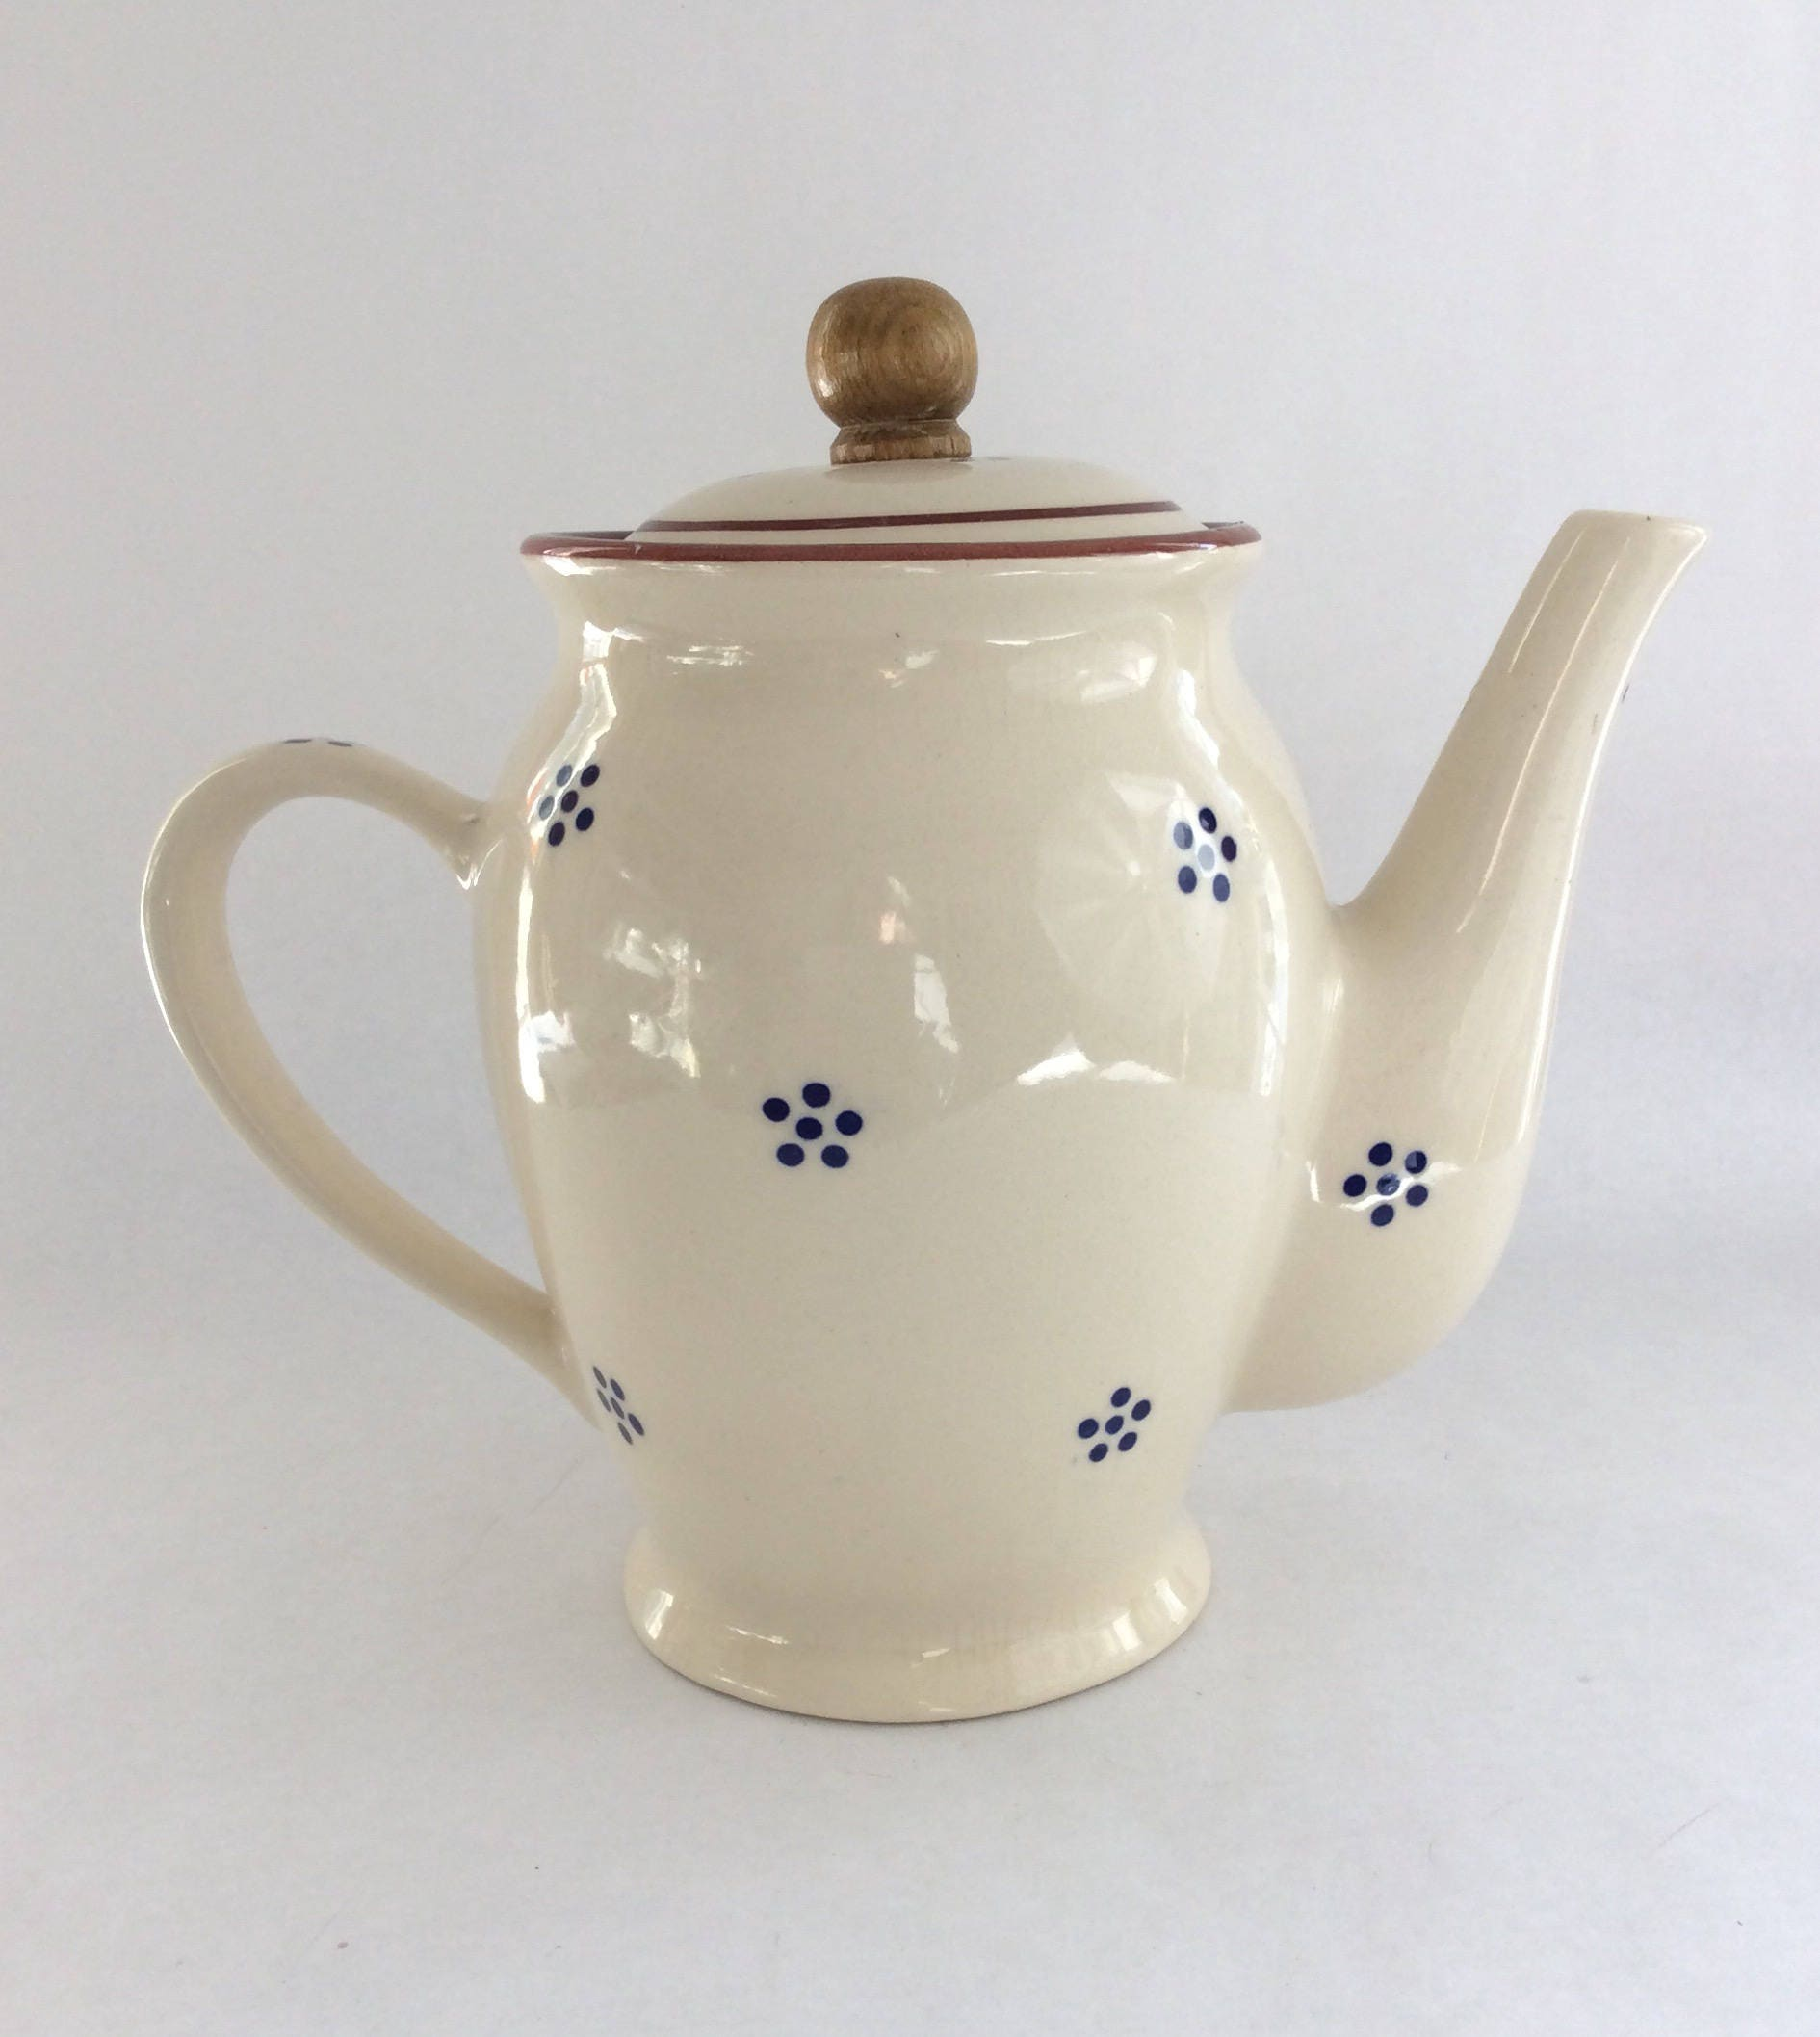 Vintage Teapot White With Blue Dots Farmhouse Tea Party Rustic